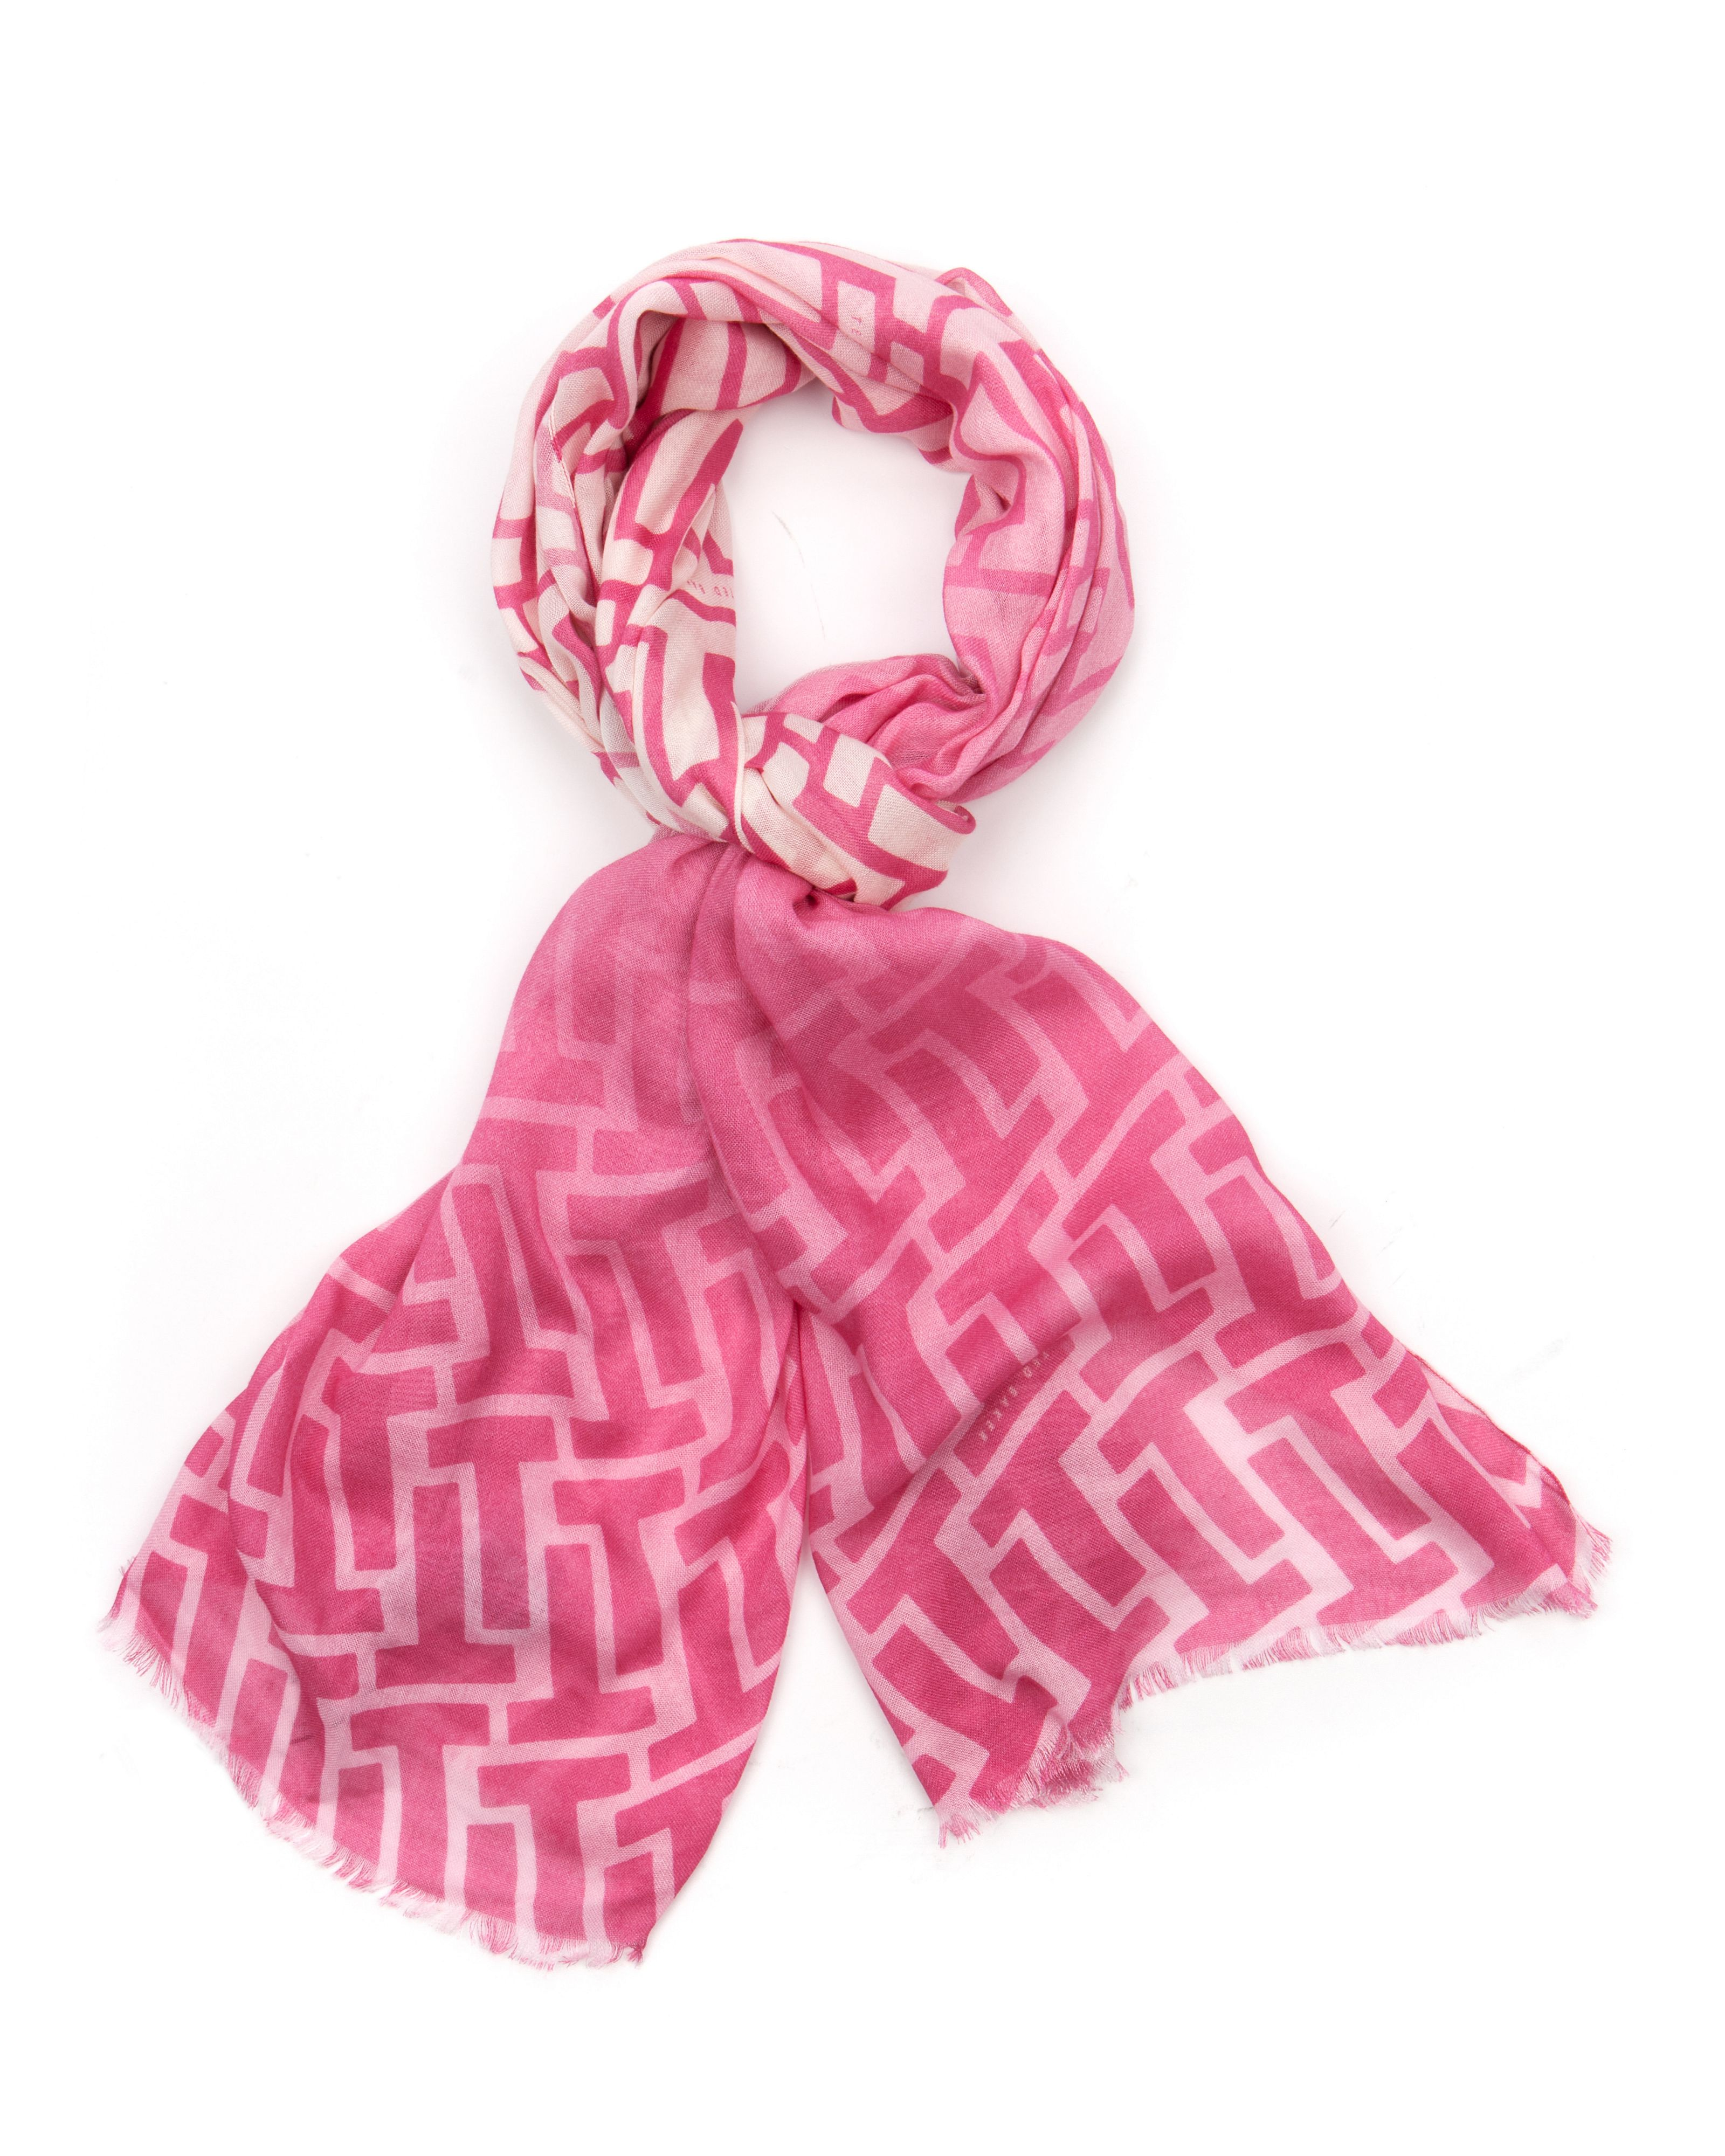 Teetea Graphic printed scarf